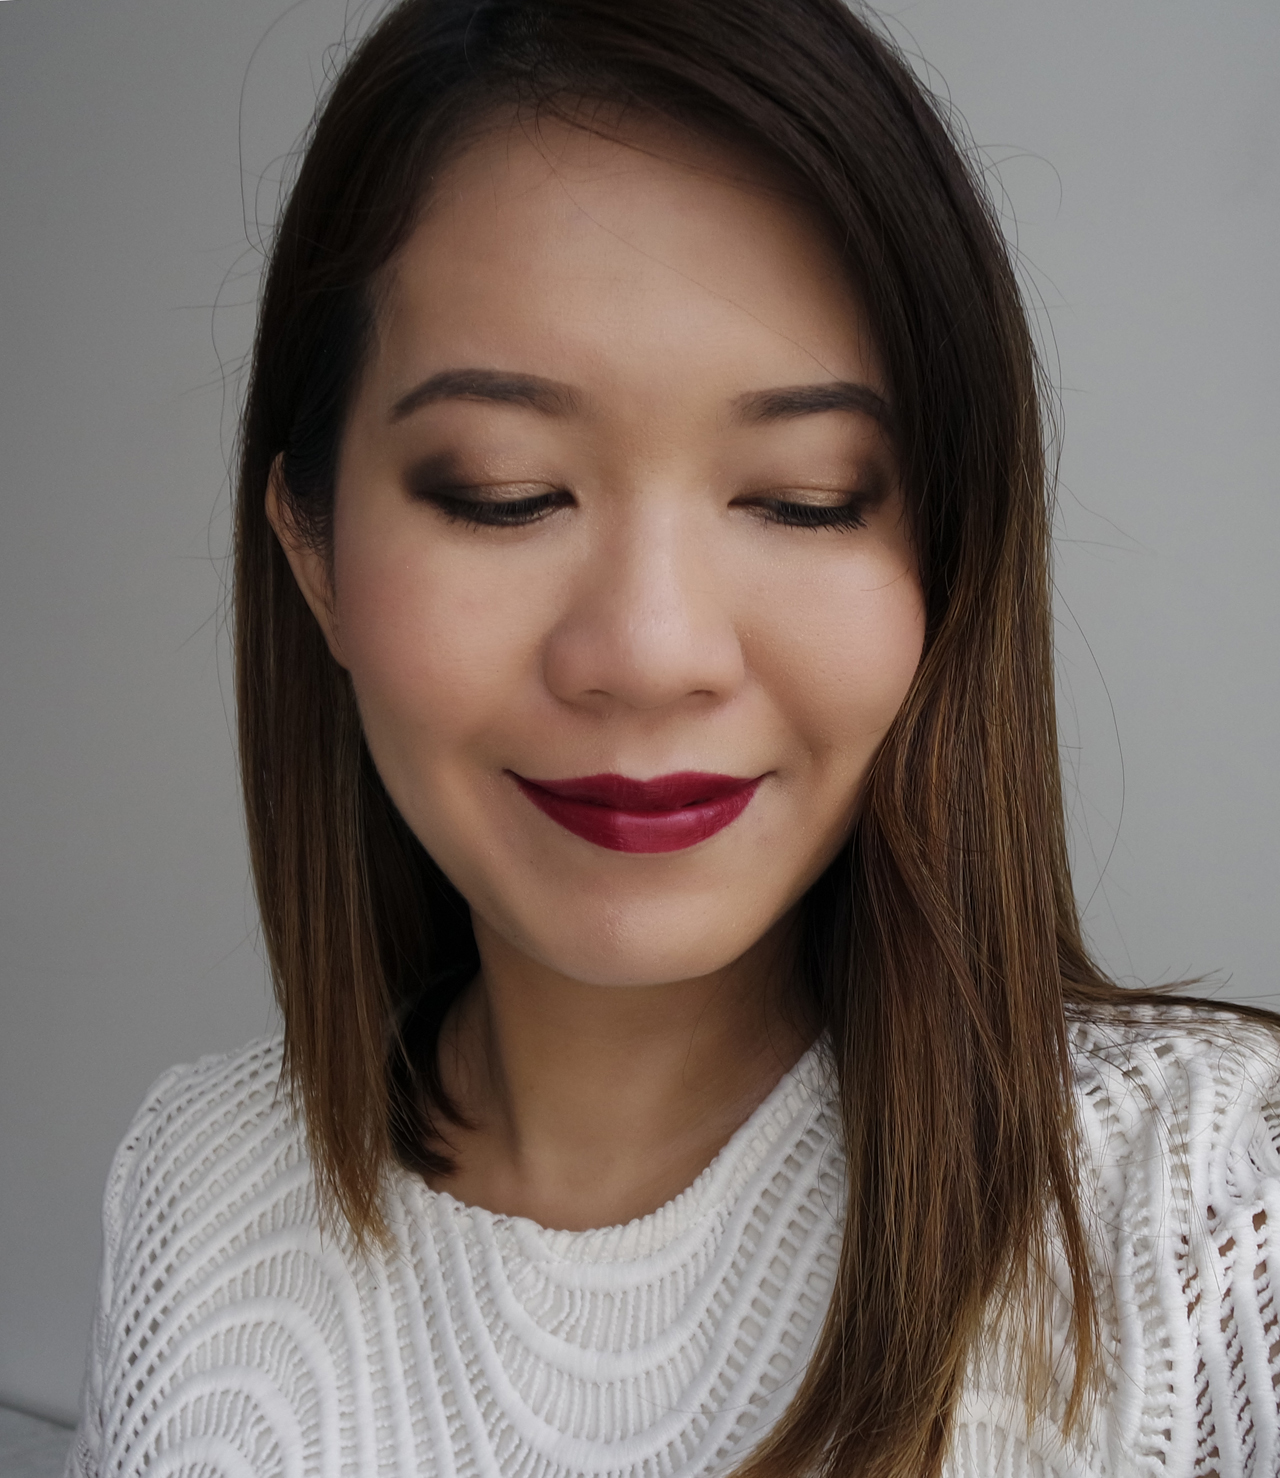 Bobbi Brown Sultry Nude Eye & Cheek Palette and Red Berry Luxe Lip Color makeup look